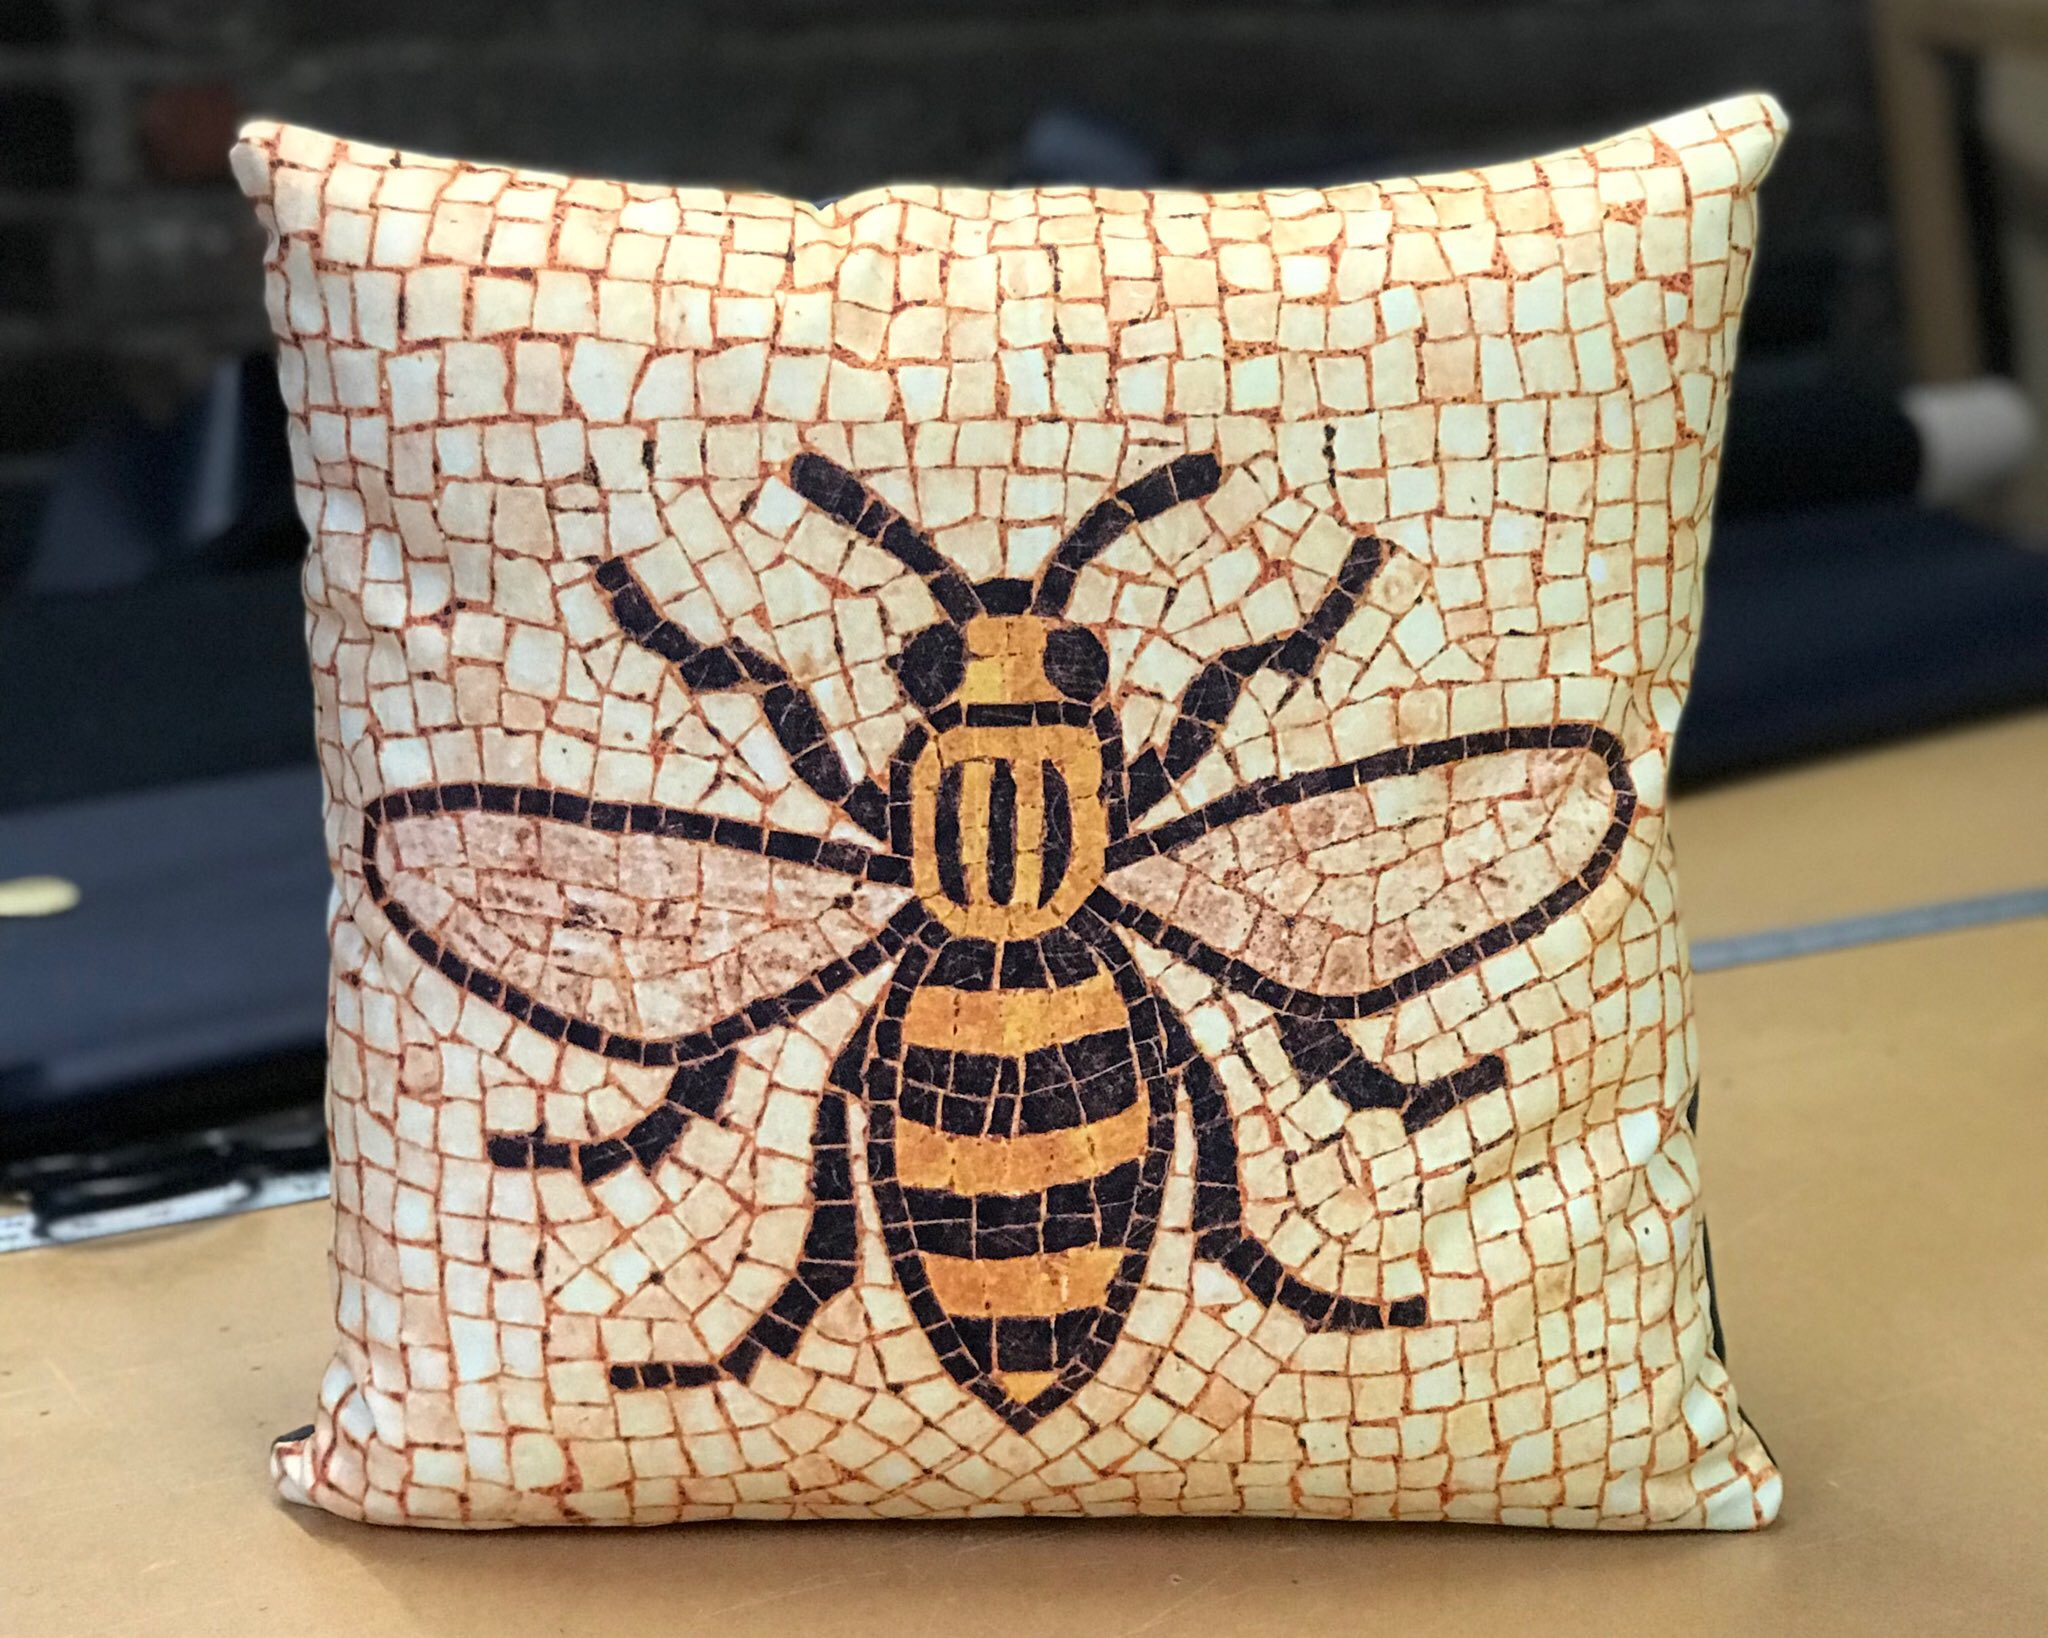 Manchester Bee Cushions - Printed and made for Manchester based photographer Paul Grogan